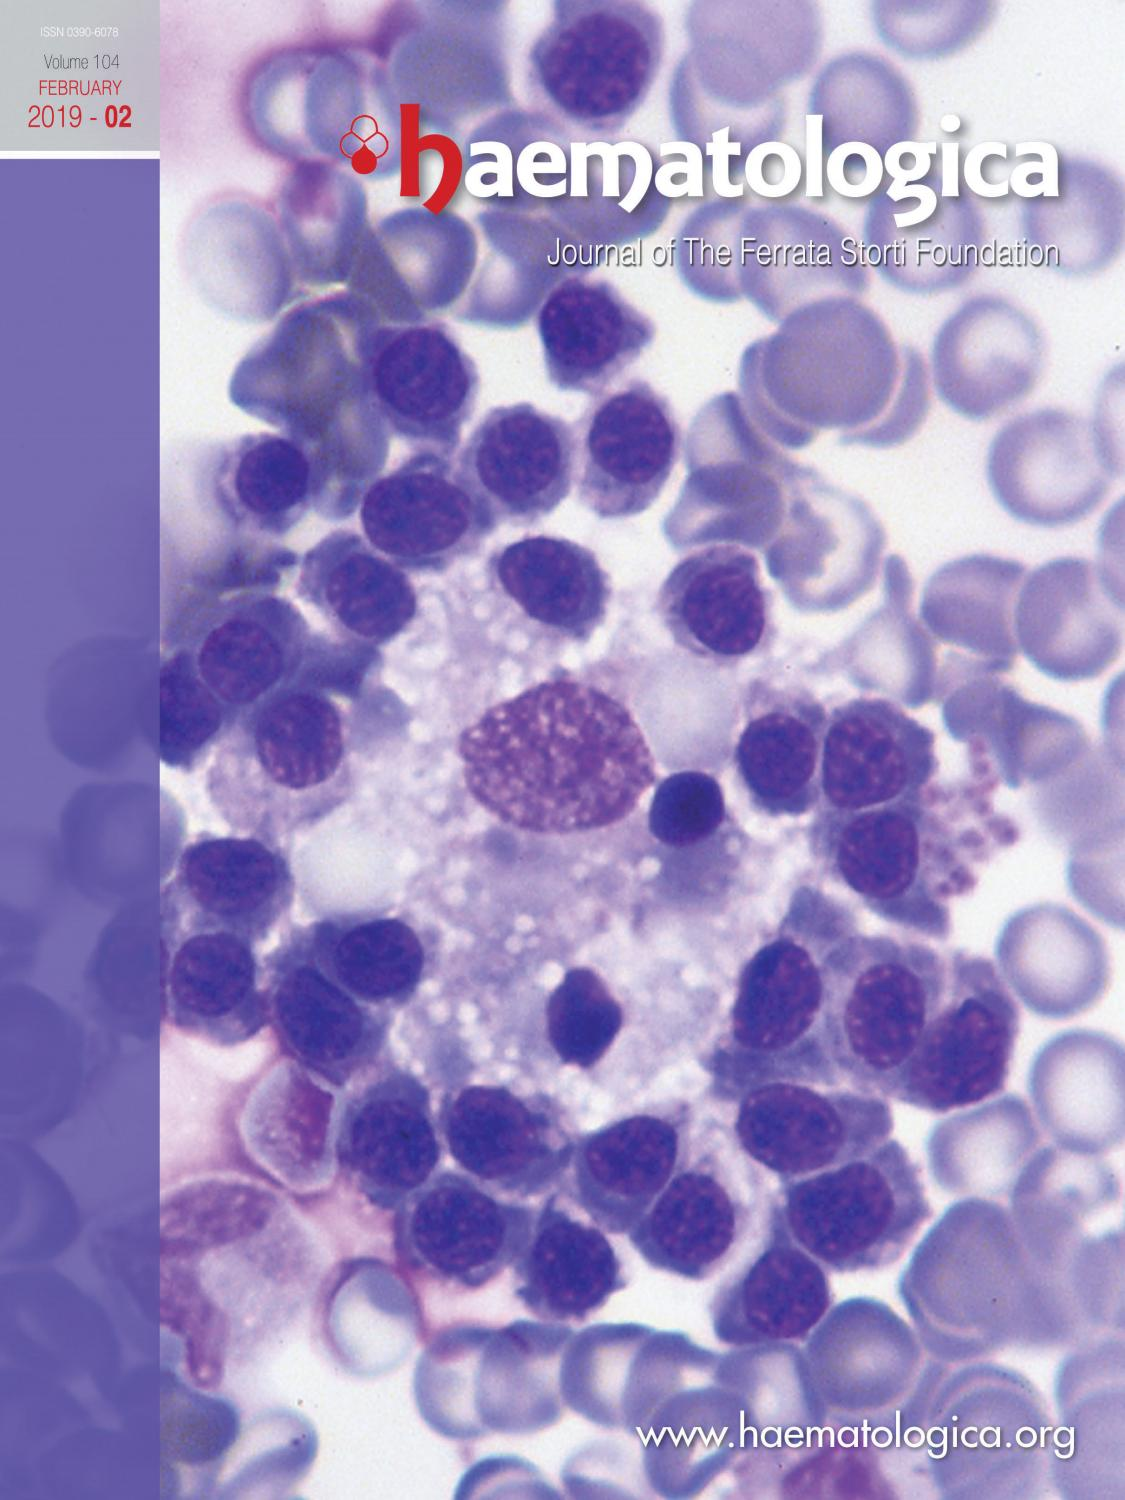 Haematologica, Volume 104, Issue 2 by Haematologica - issuu